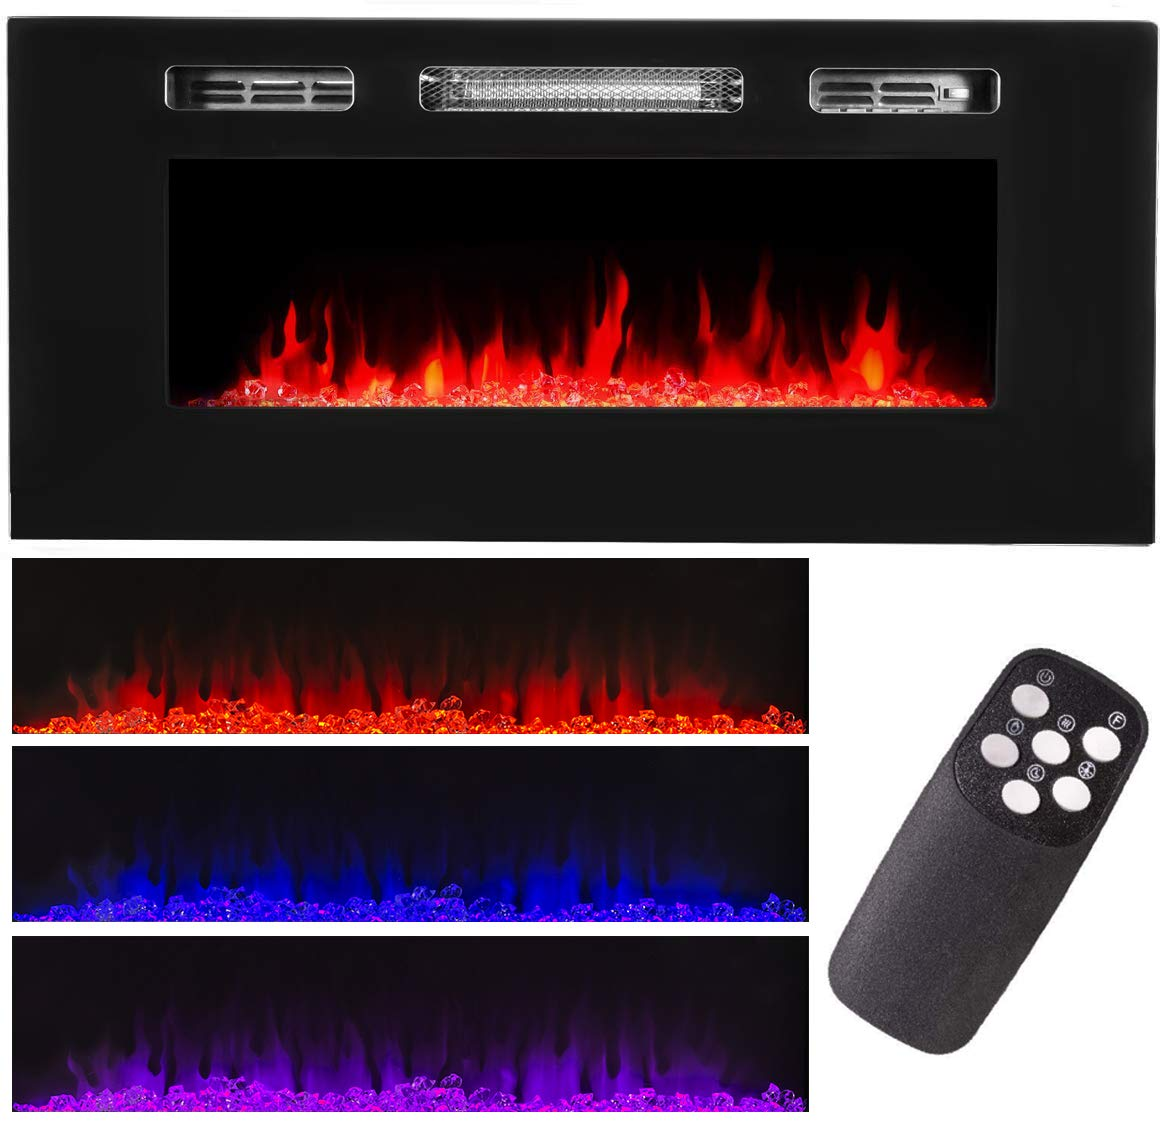 XtremepowerUS 1500W Recessed Electric Insert Fireplace Wall Mounted Fire Place Heater Multicolor Flame, Remote Control